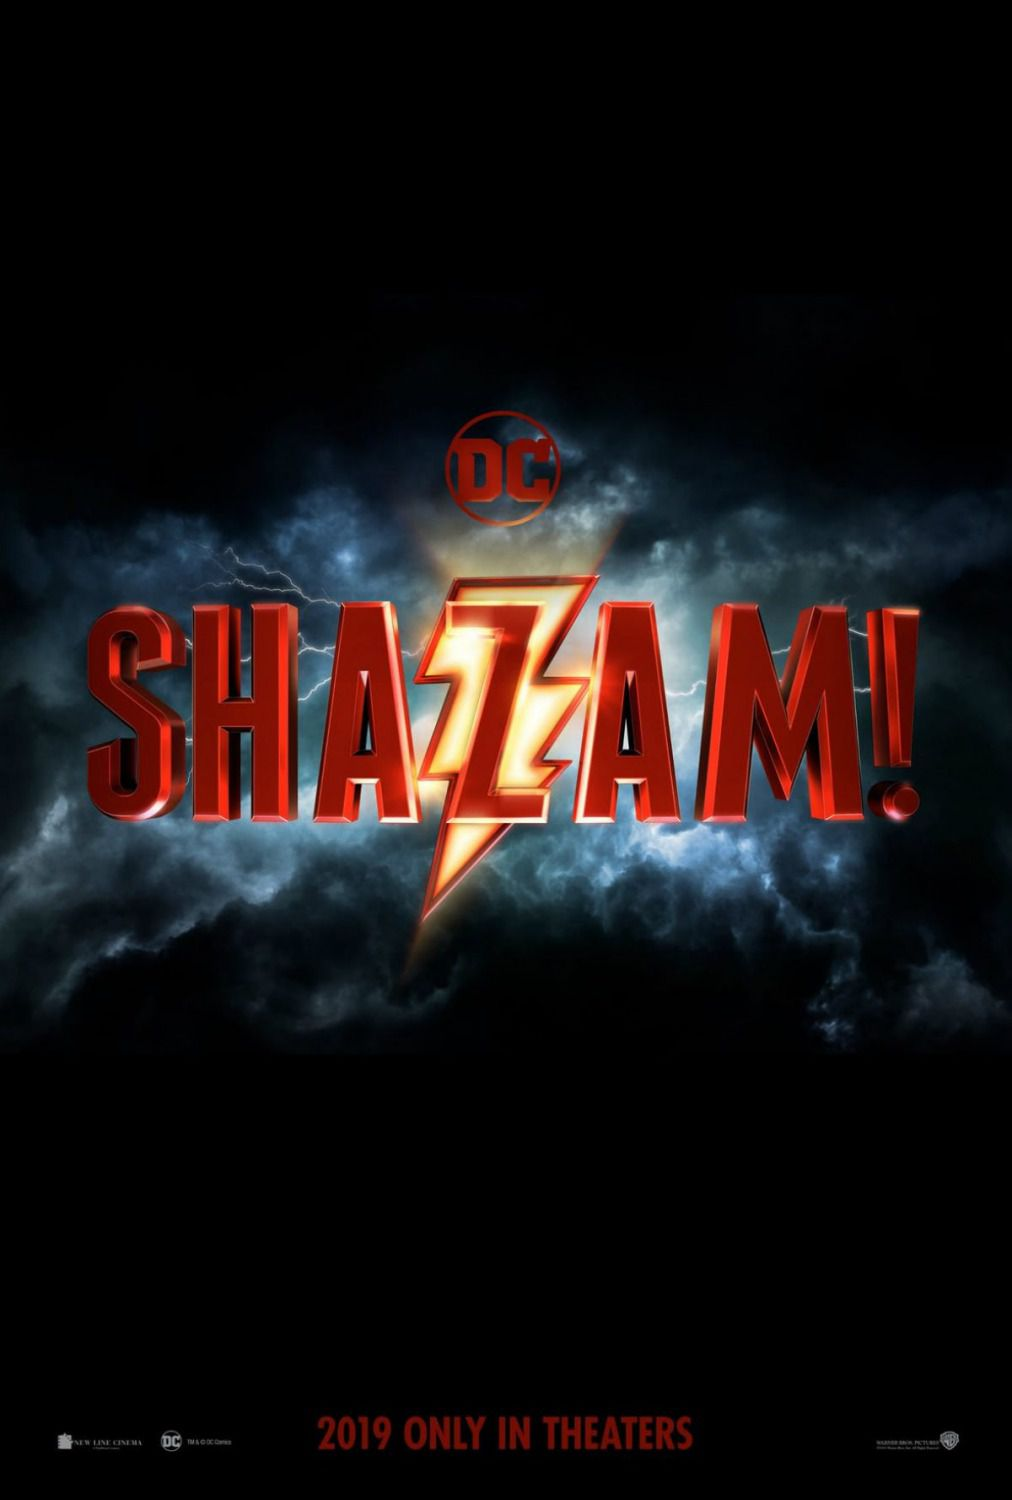 Shazam - super hero DC film poster 2019